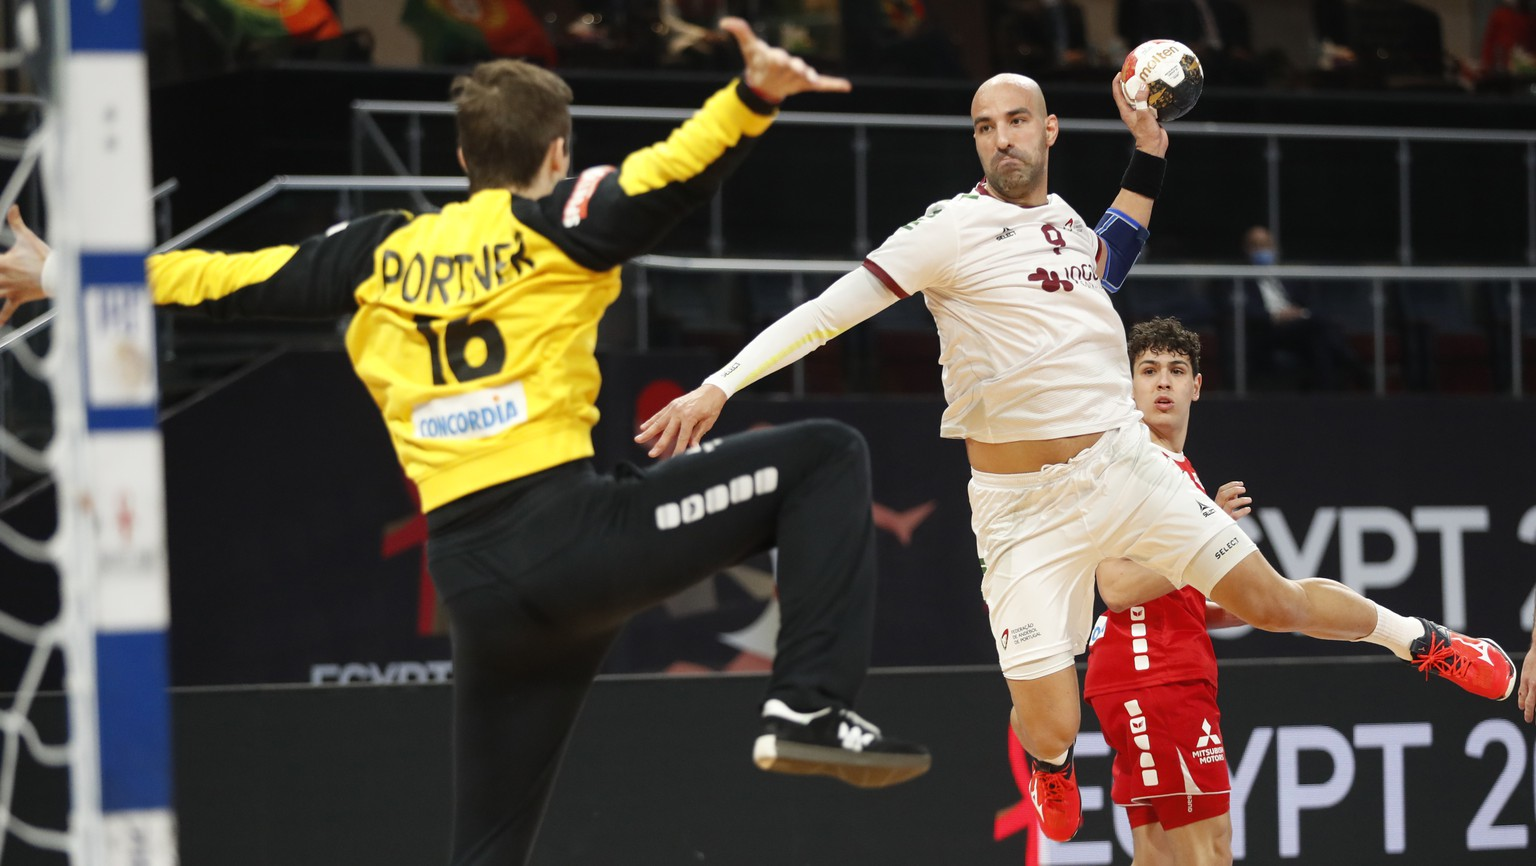 Portugal's Joao Ferraztakes a shoot as Switzerland's goal keeper Nikola Portner in action during the World Handball Championship between Switzerland and Portugal in Cairo, Egypt, Friday, Jan. 22, 2021. (AP Photo/Petr David Josek, Pool)